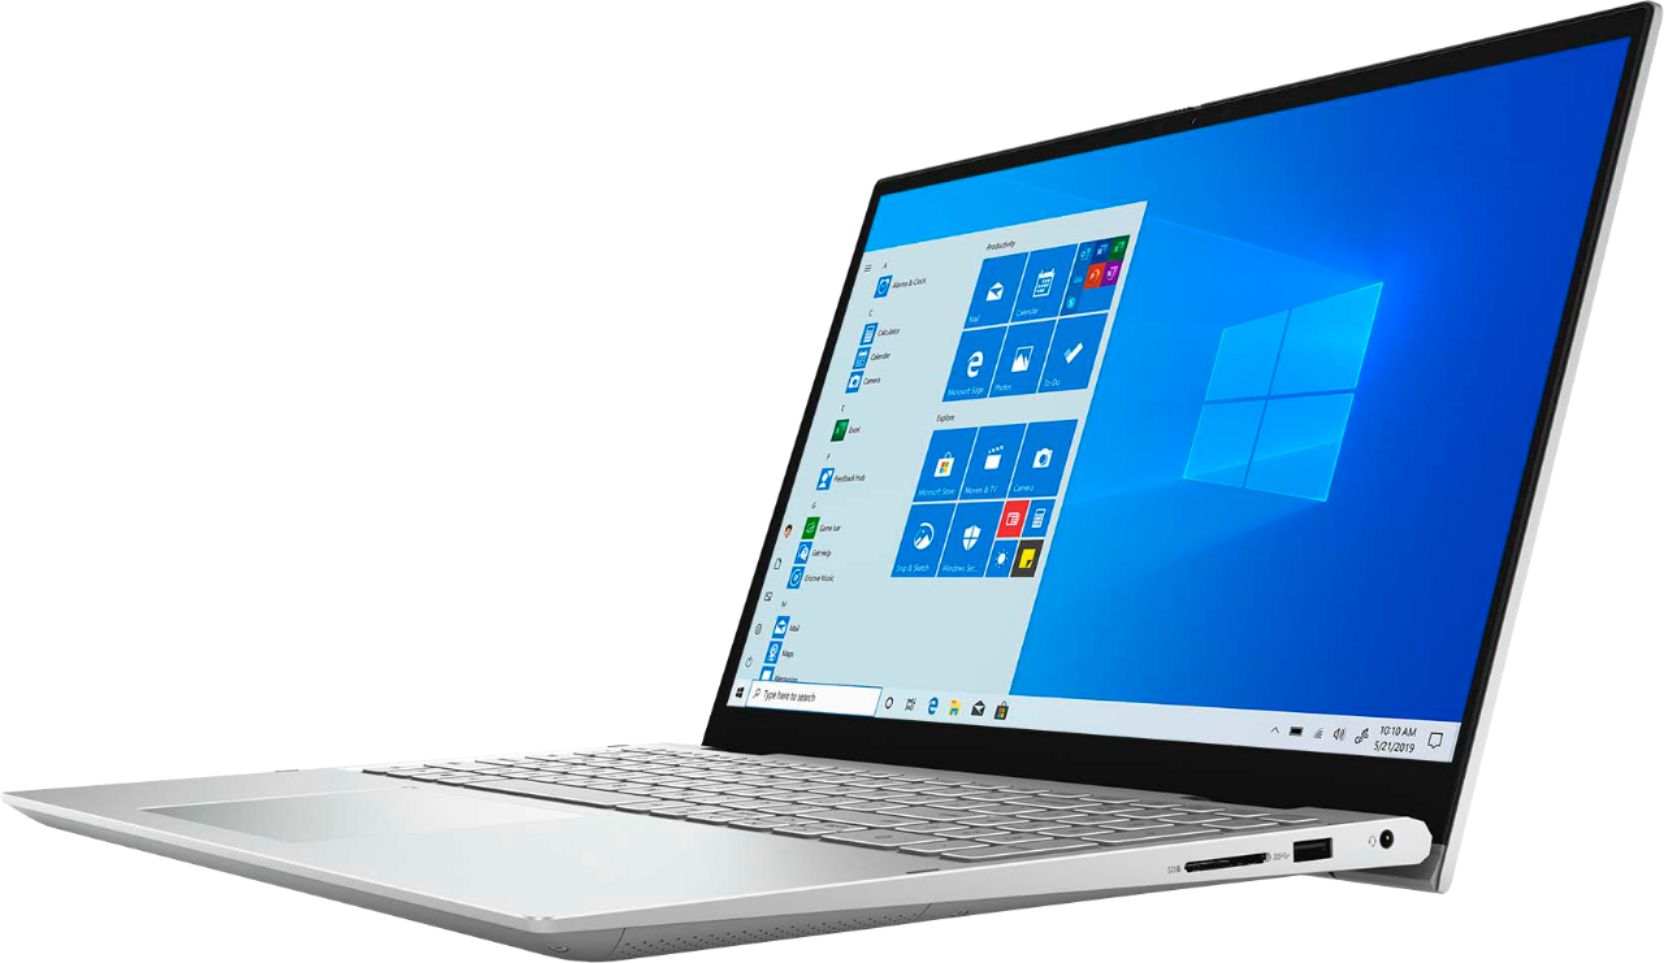 """Alt View Zoom 1. Dell - Inspiron 15 7000 2-in-1 15.6"""" Touch-Screen Laptop - Intel Core i7 - 16GB Memory - 512GB SSD + 32GB Intel Optane - silver."""